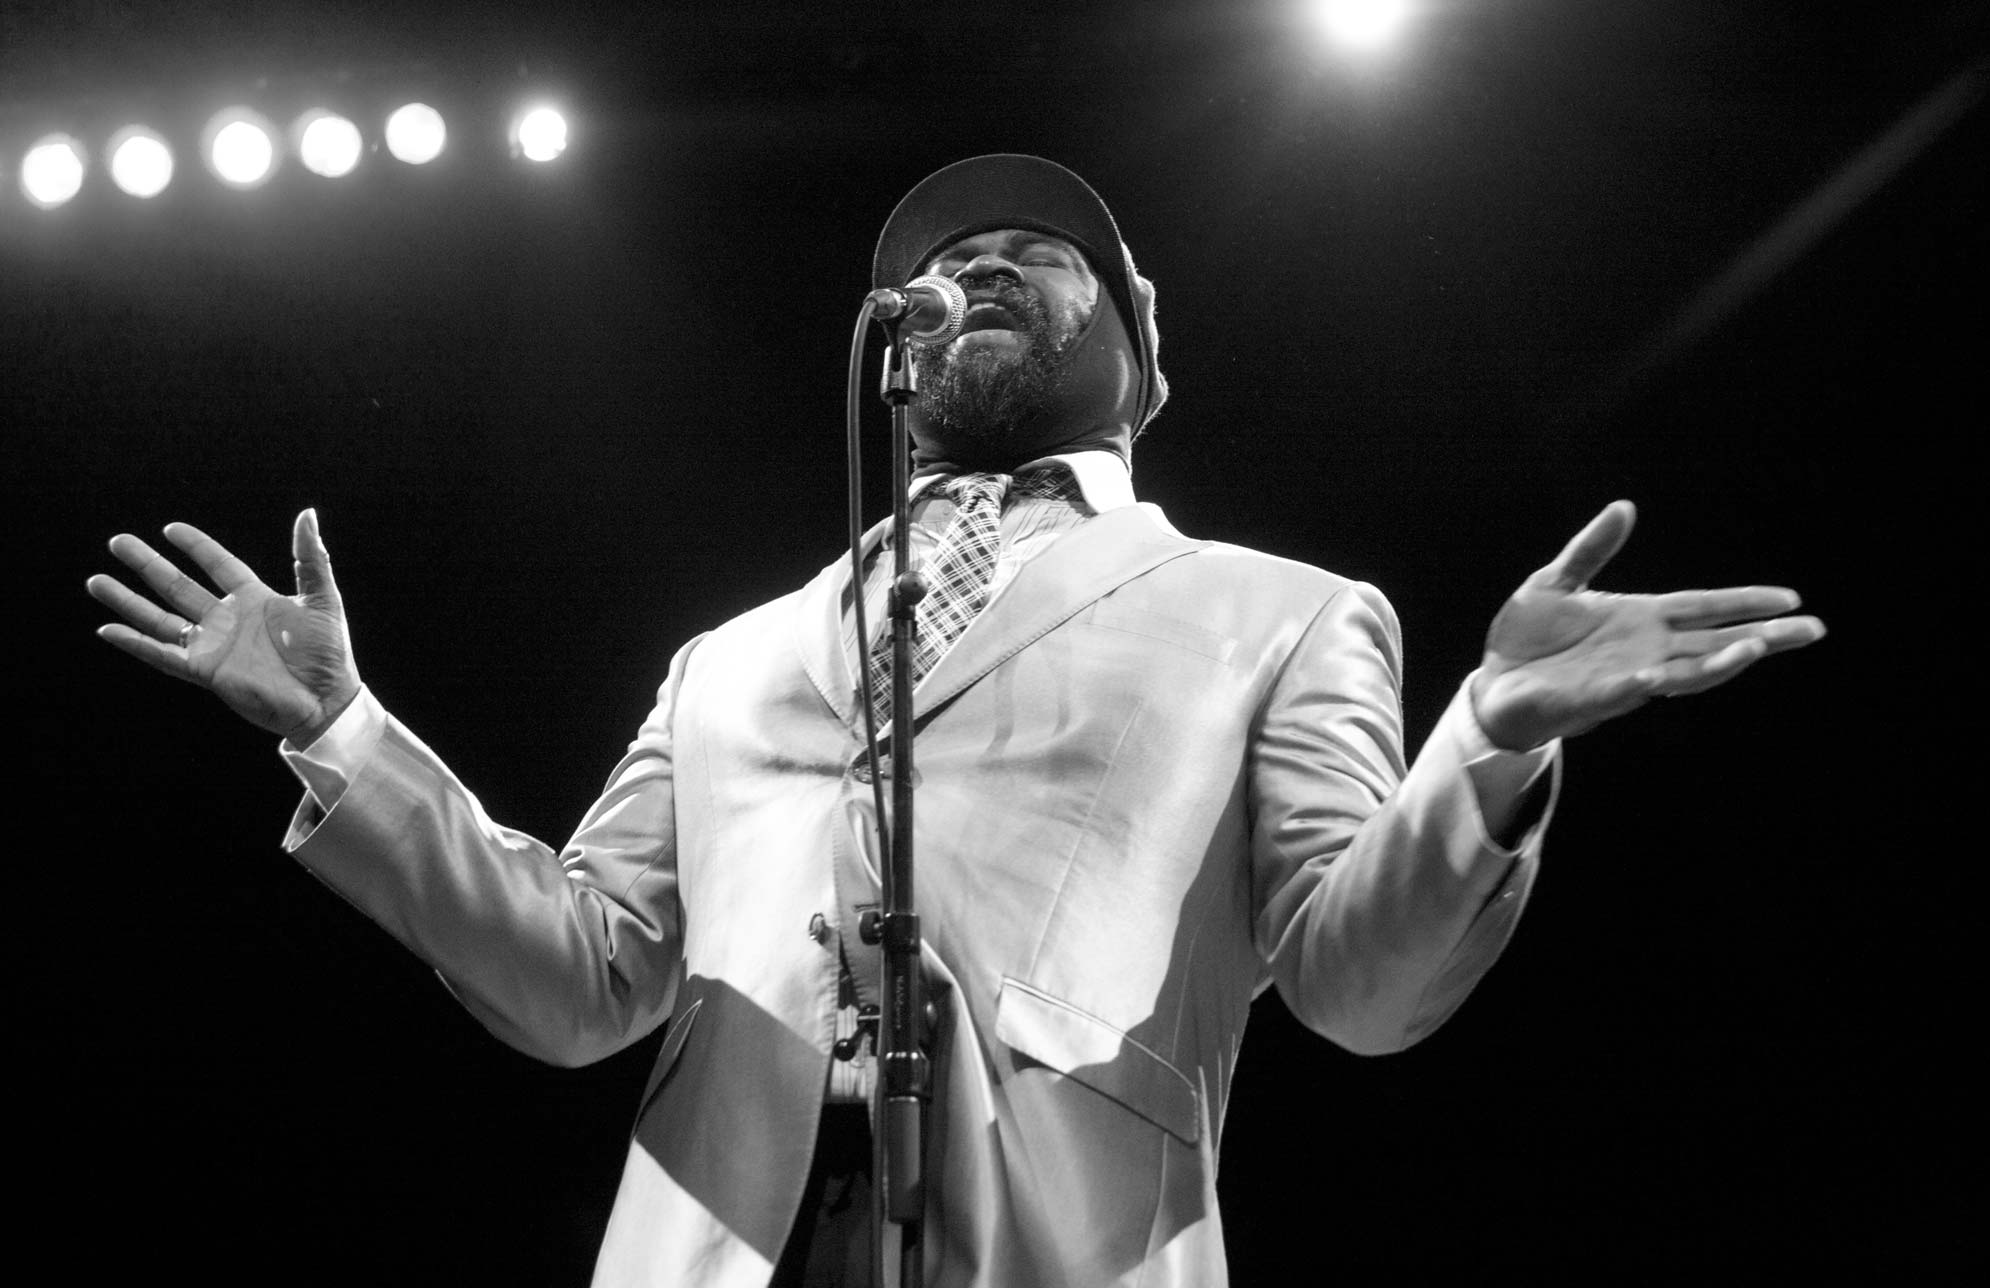 Le Meilleur Jazzday Gregory Porter – 1960 What 69 Musicology Ce Mois Ci